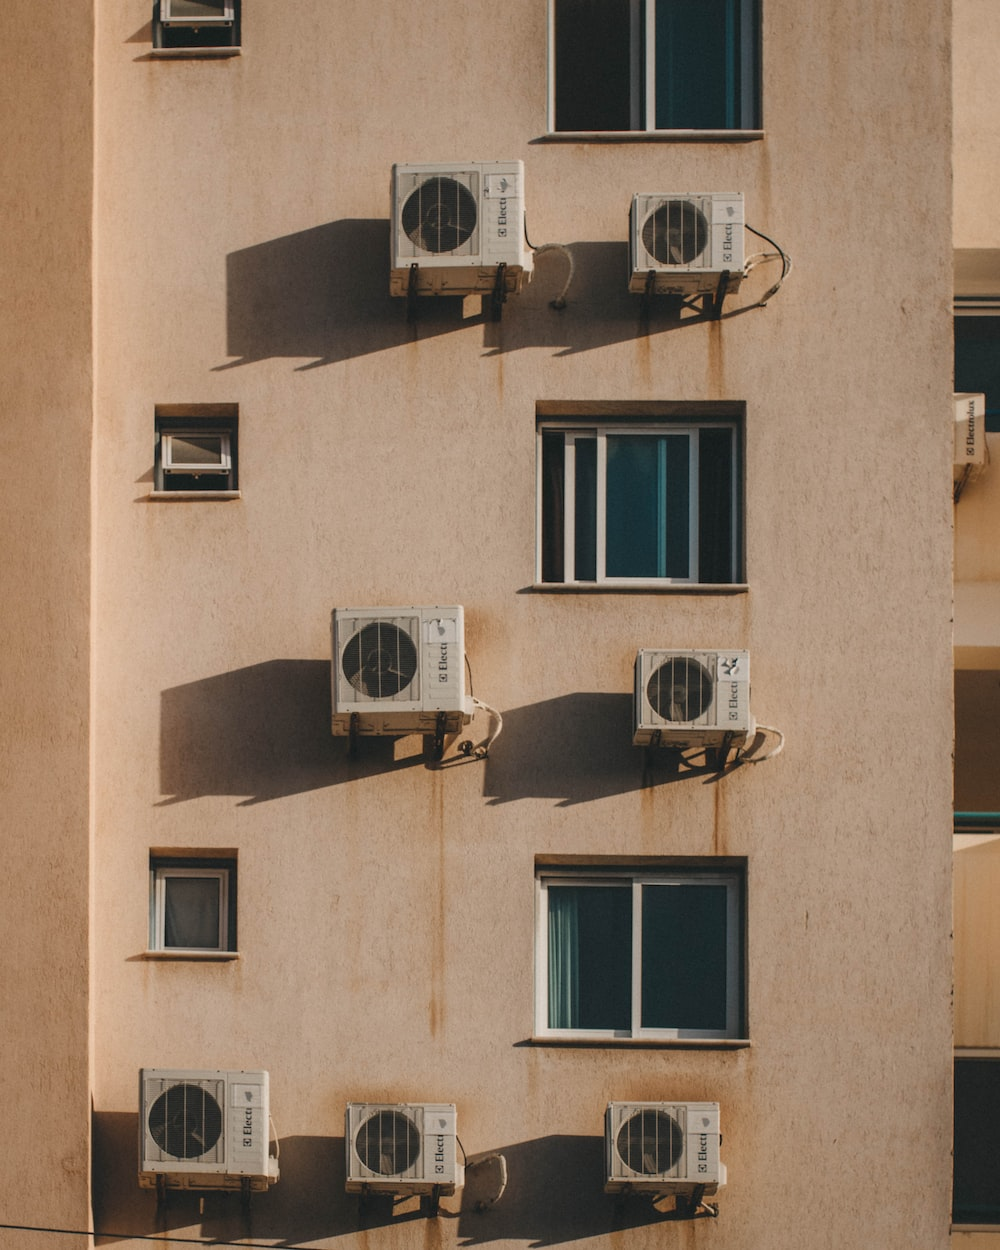 AC units mounted on wall outside building